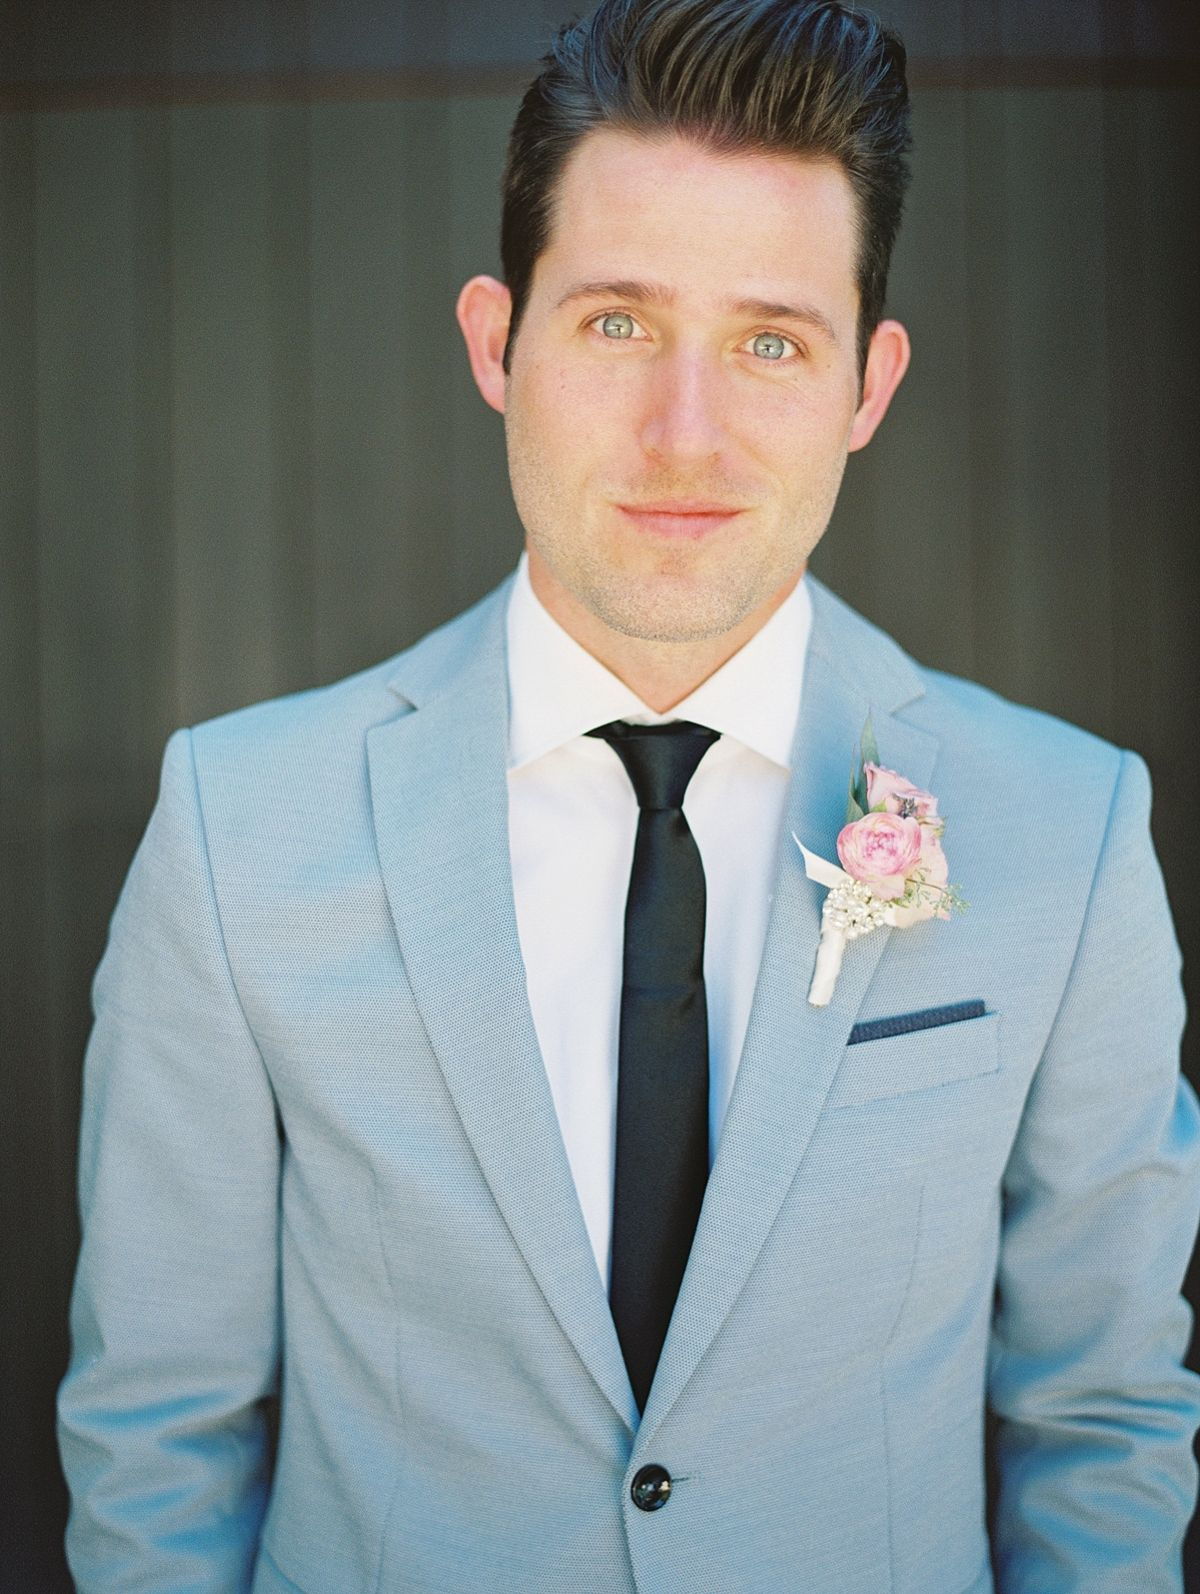 Youtube stars colleen ballinger and joshua evans wedding by britta ...